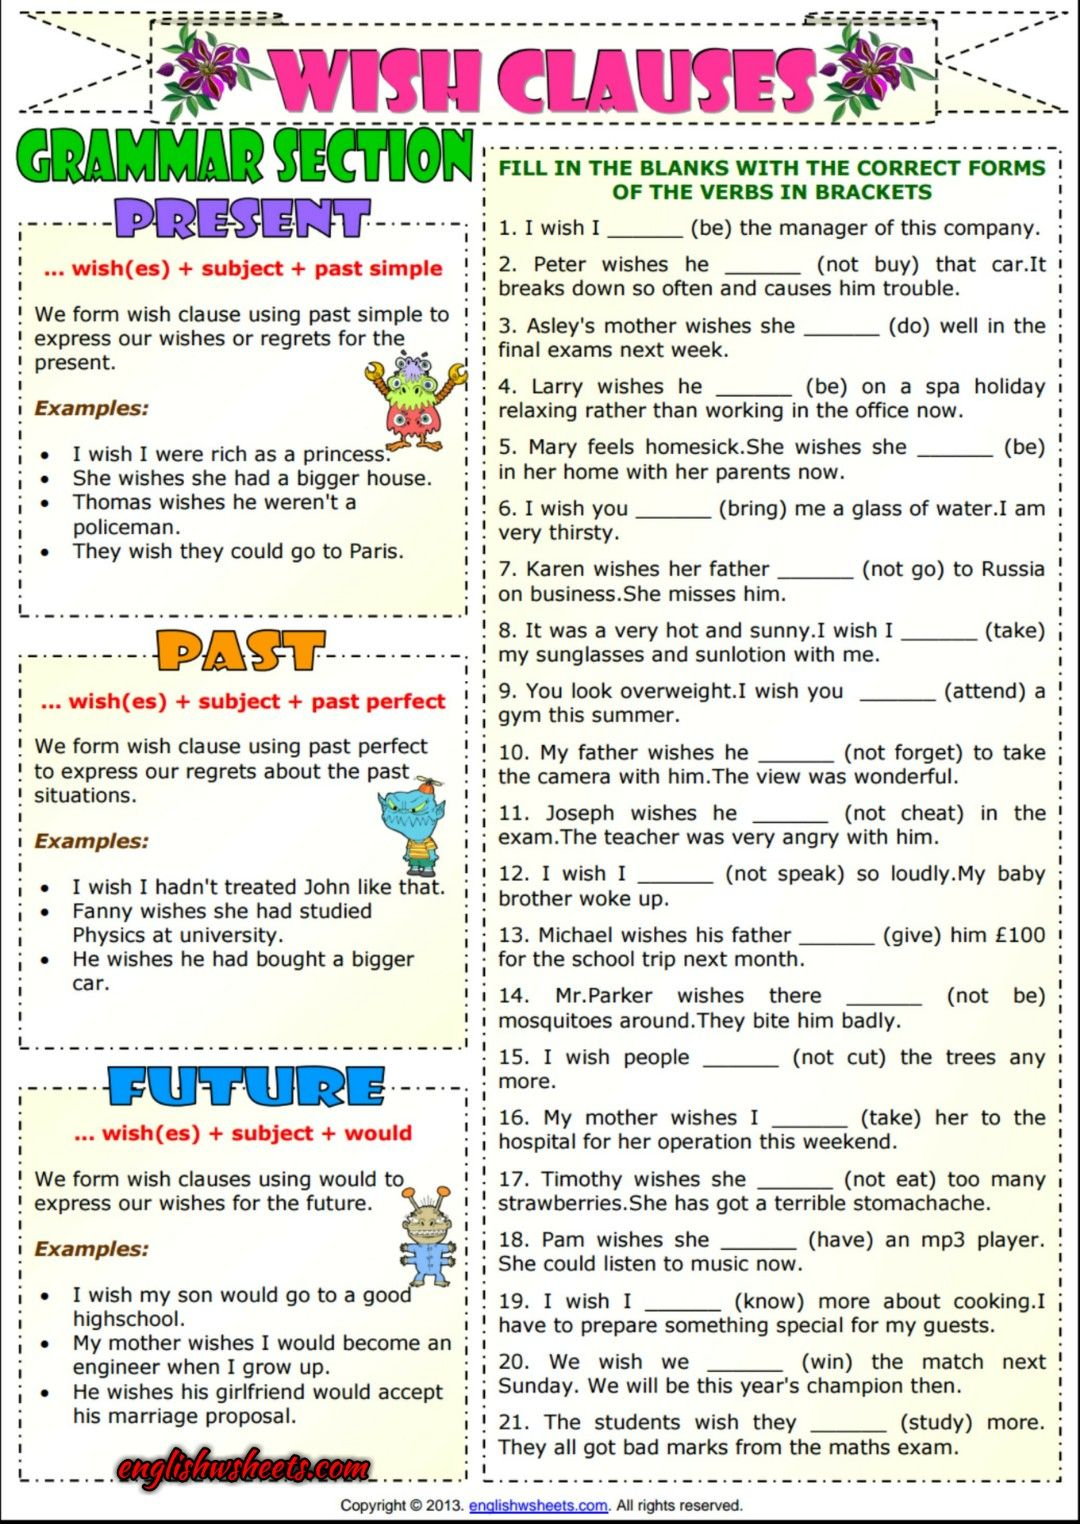 Wish Clauses ESL Grammar Exercises Worksheet | English | Pinterest ...